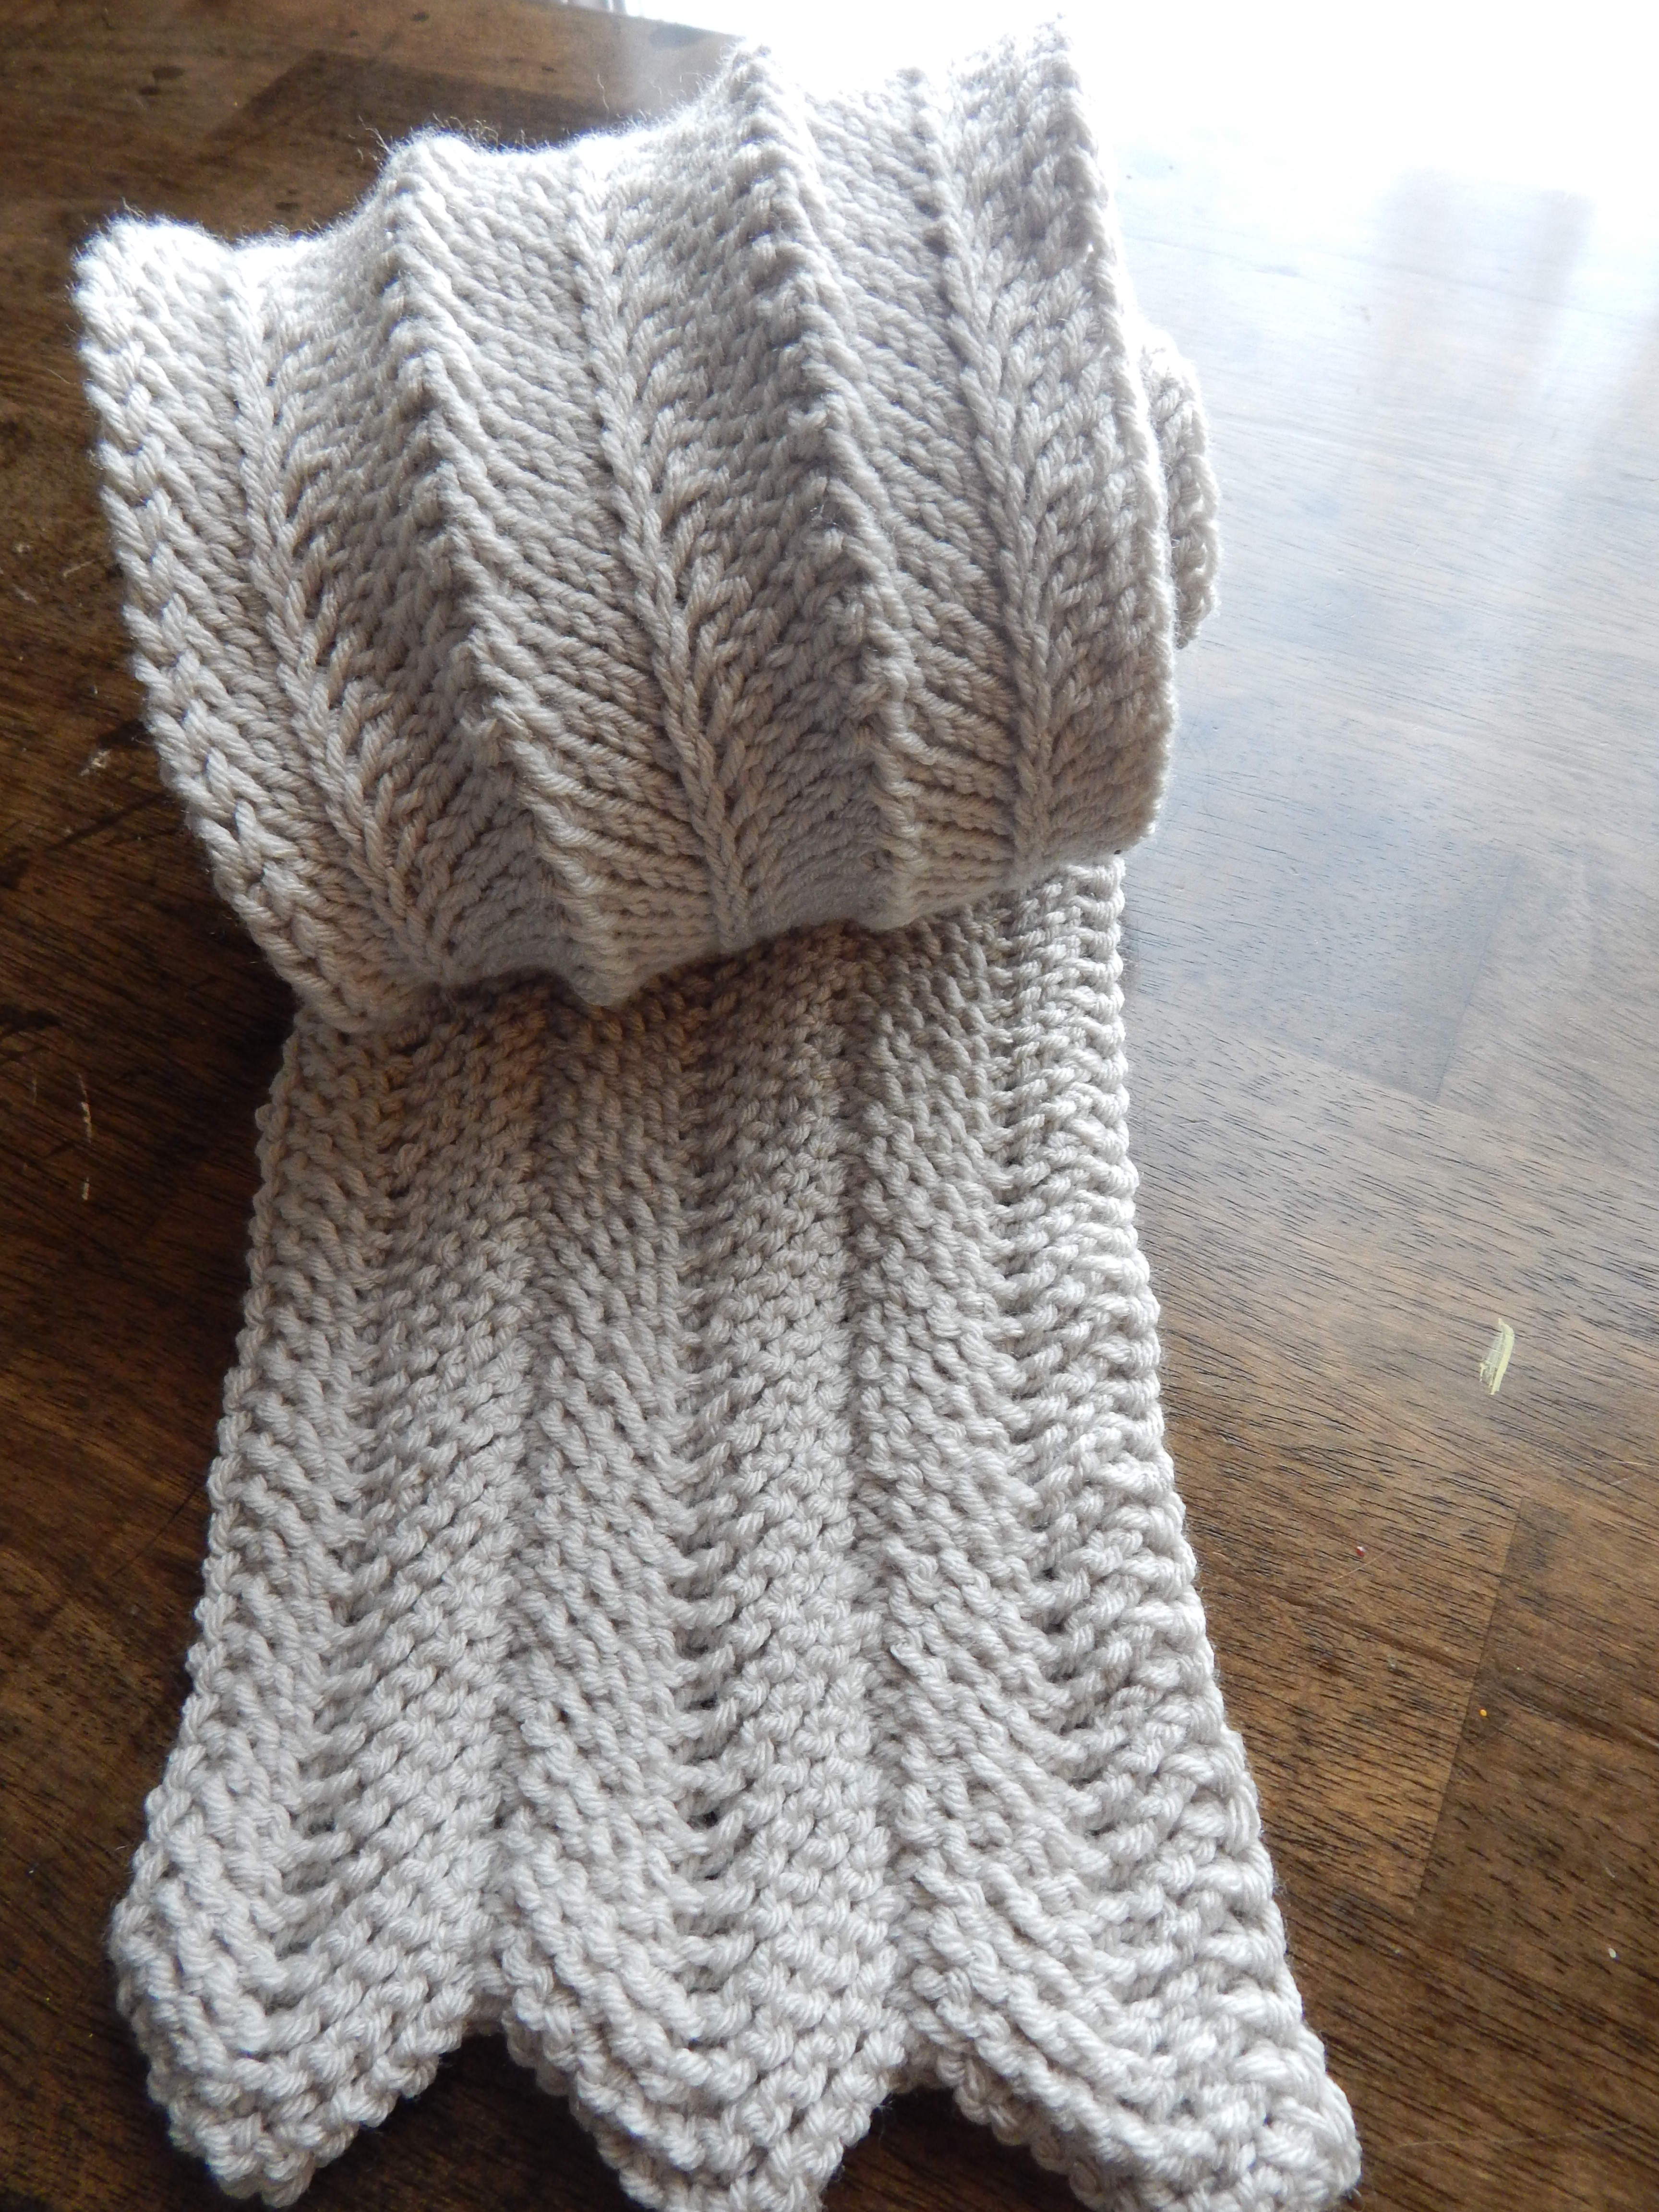 Fresh Tunisian Ripple Scarf Free Pattern Tunisian Crochet Knit Stitch Of Superb 46 Pictures Tunisian Crochet Knit Stitch